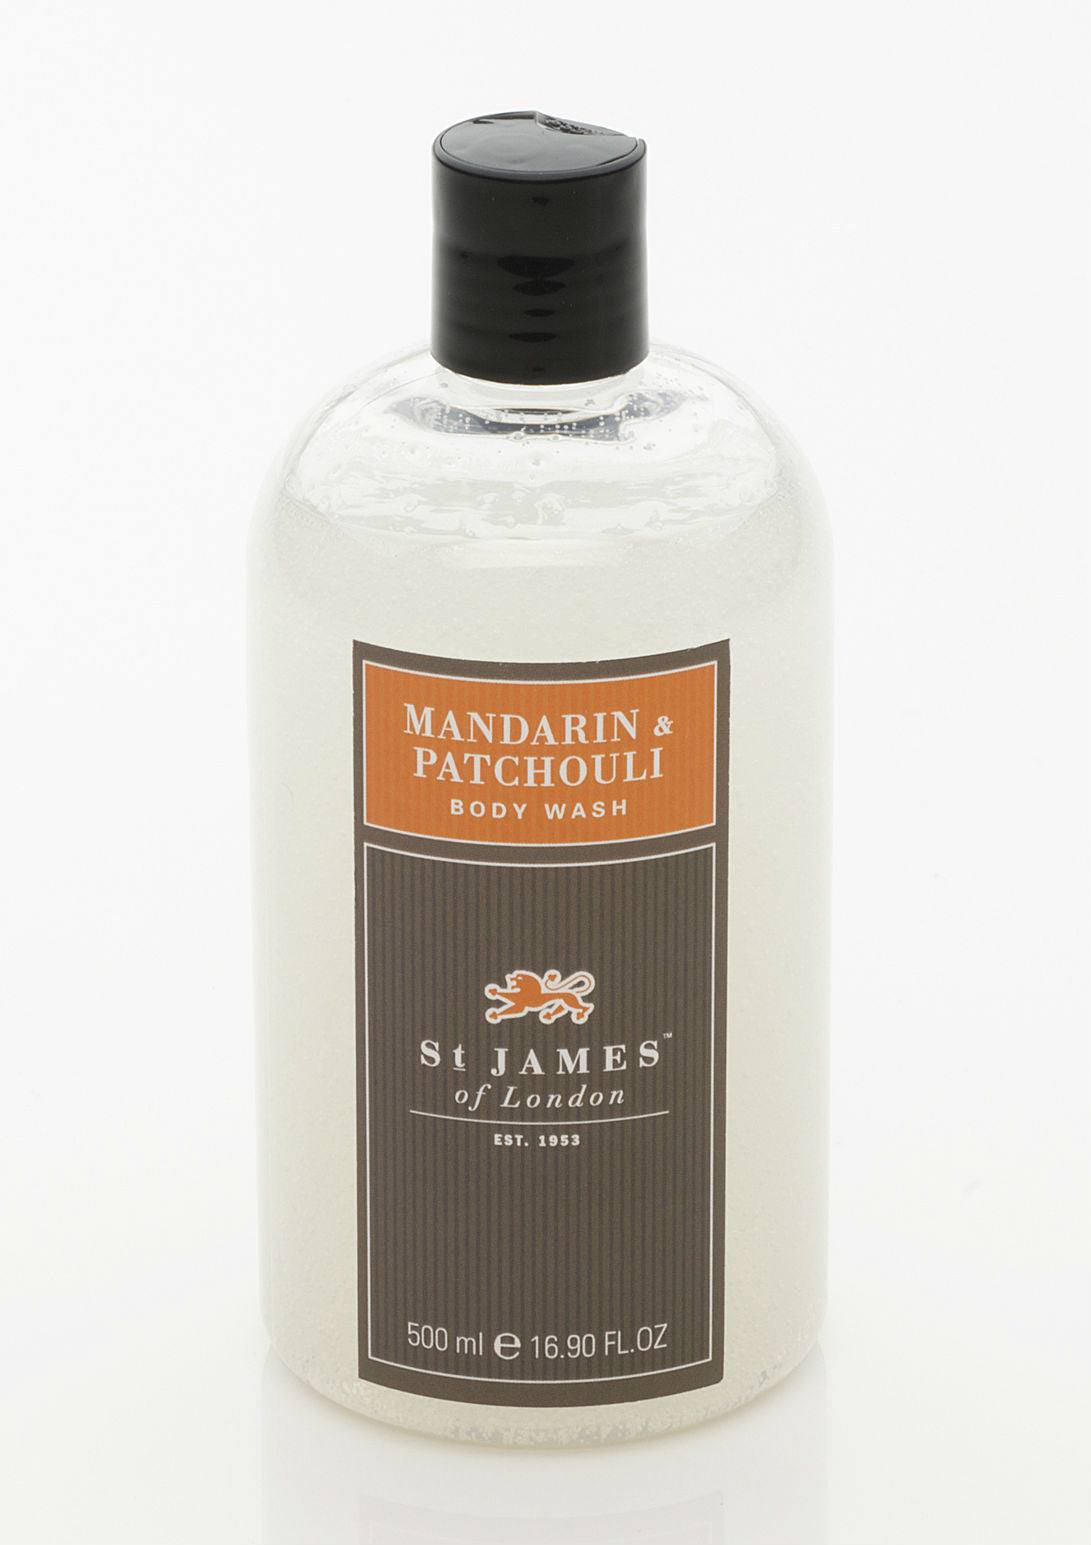 Mandarin & Patchouli Body Wash 8oz (4434996756534)